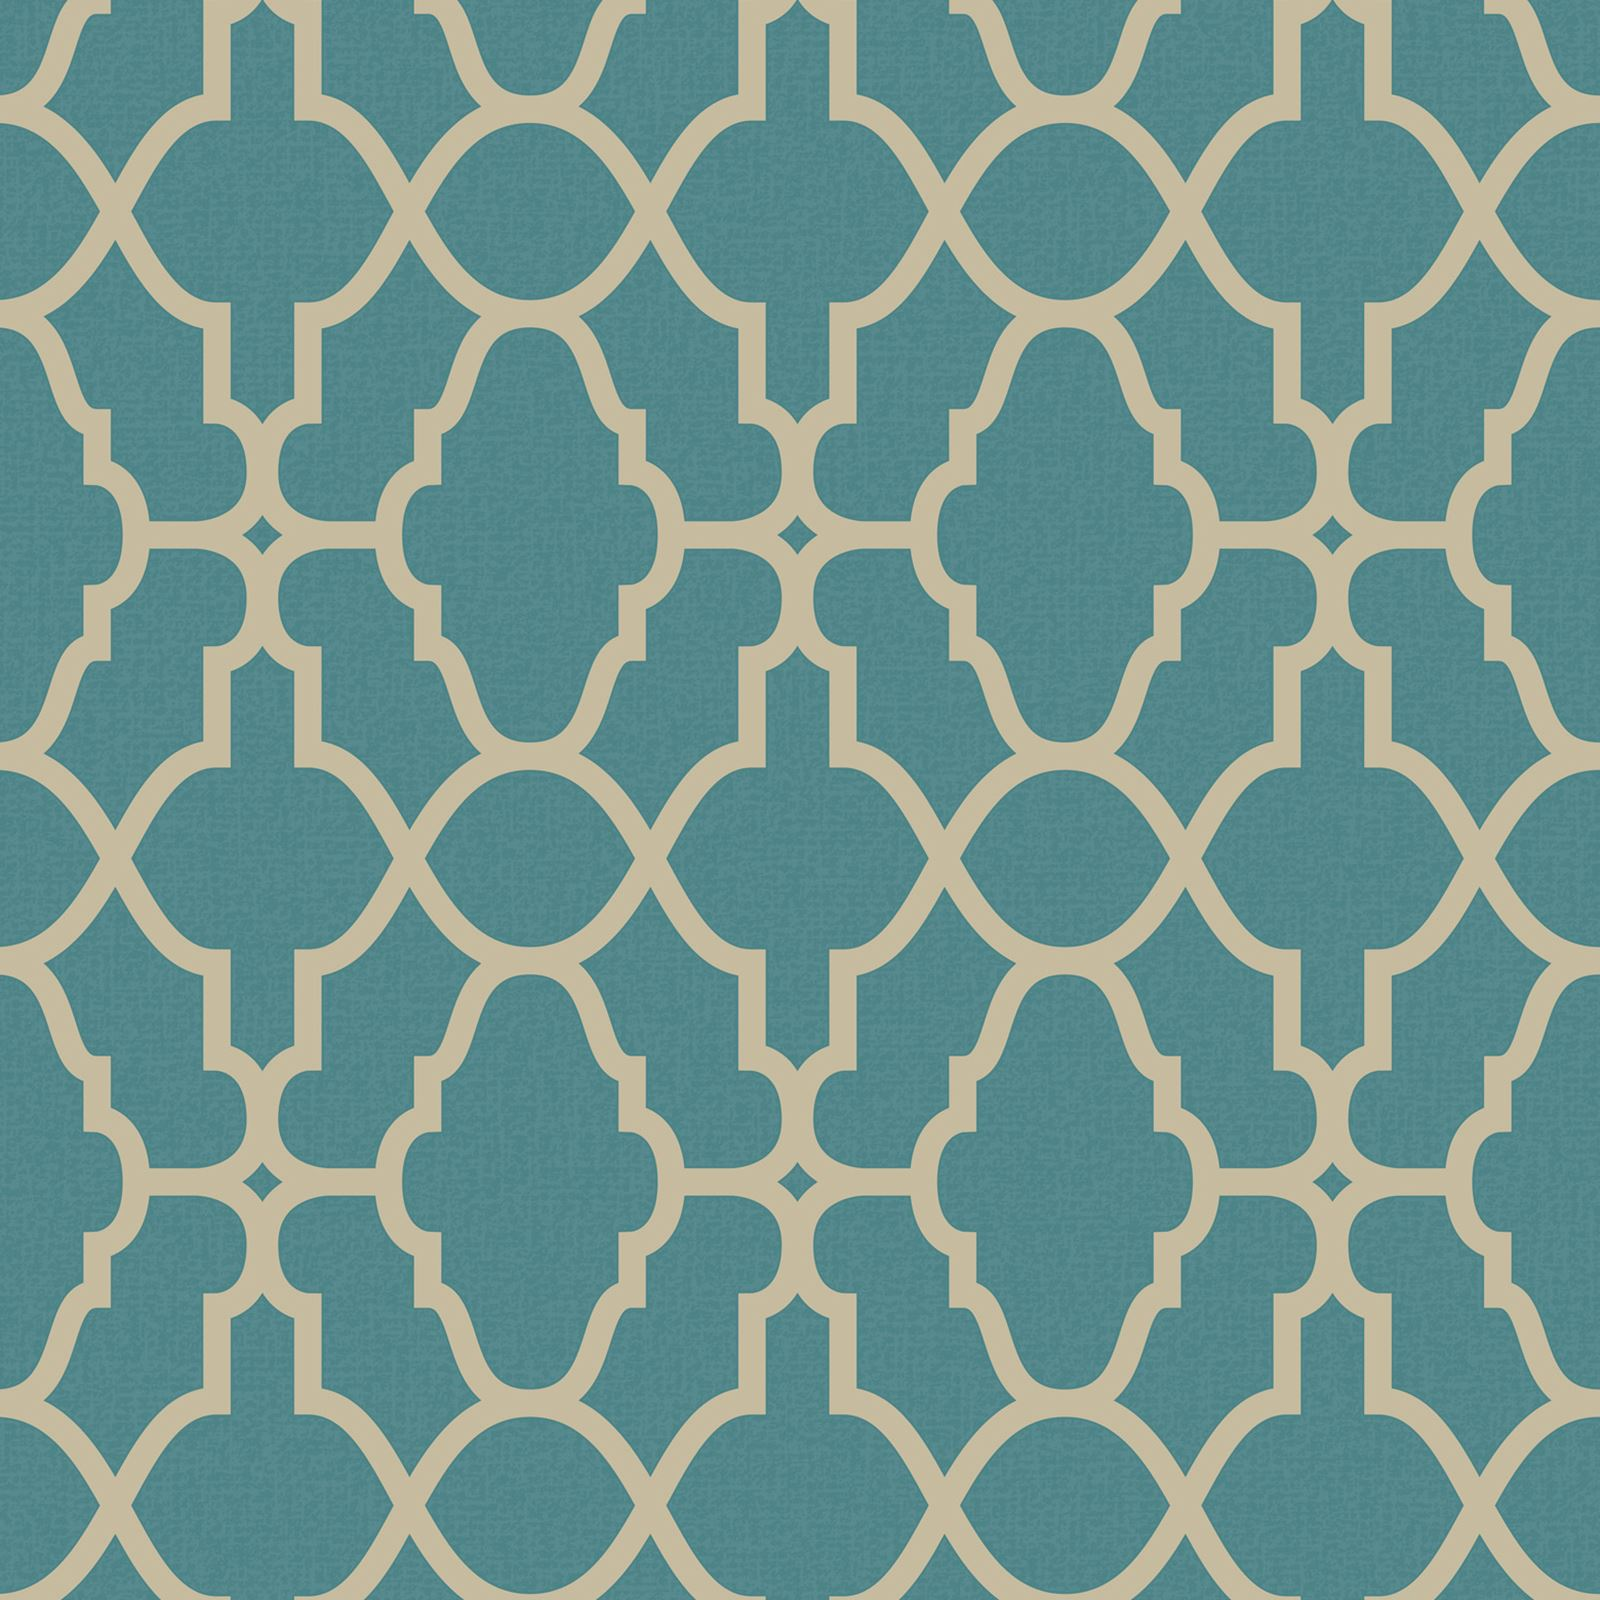 Details About Geometric Wallpaper Rose Gold Silver Navy Blue Teal Metallic More